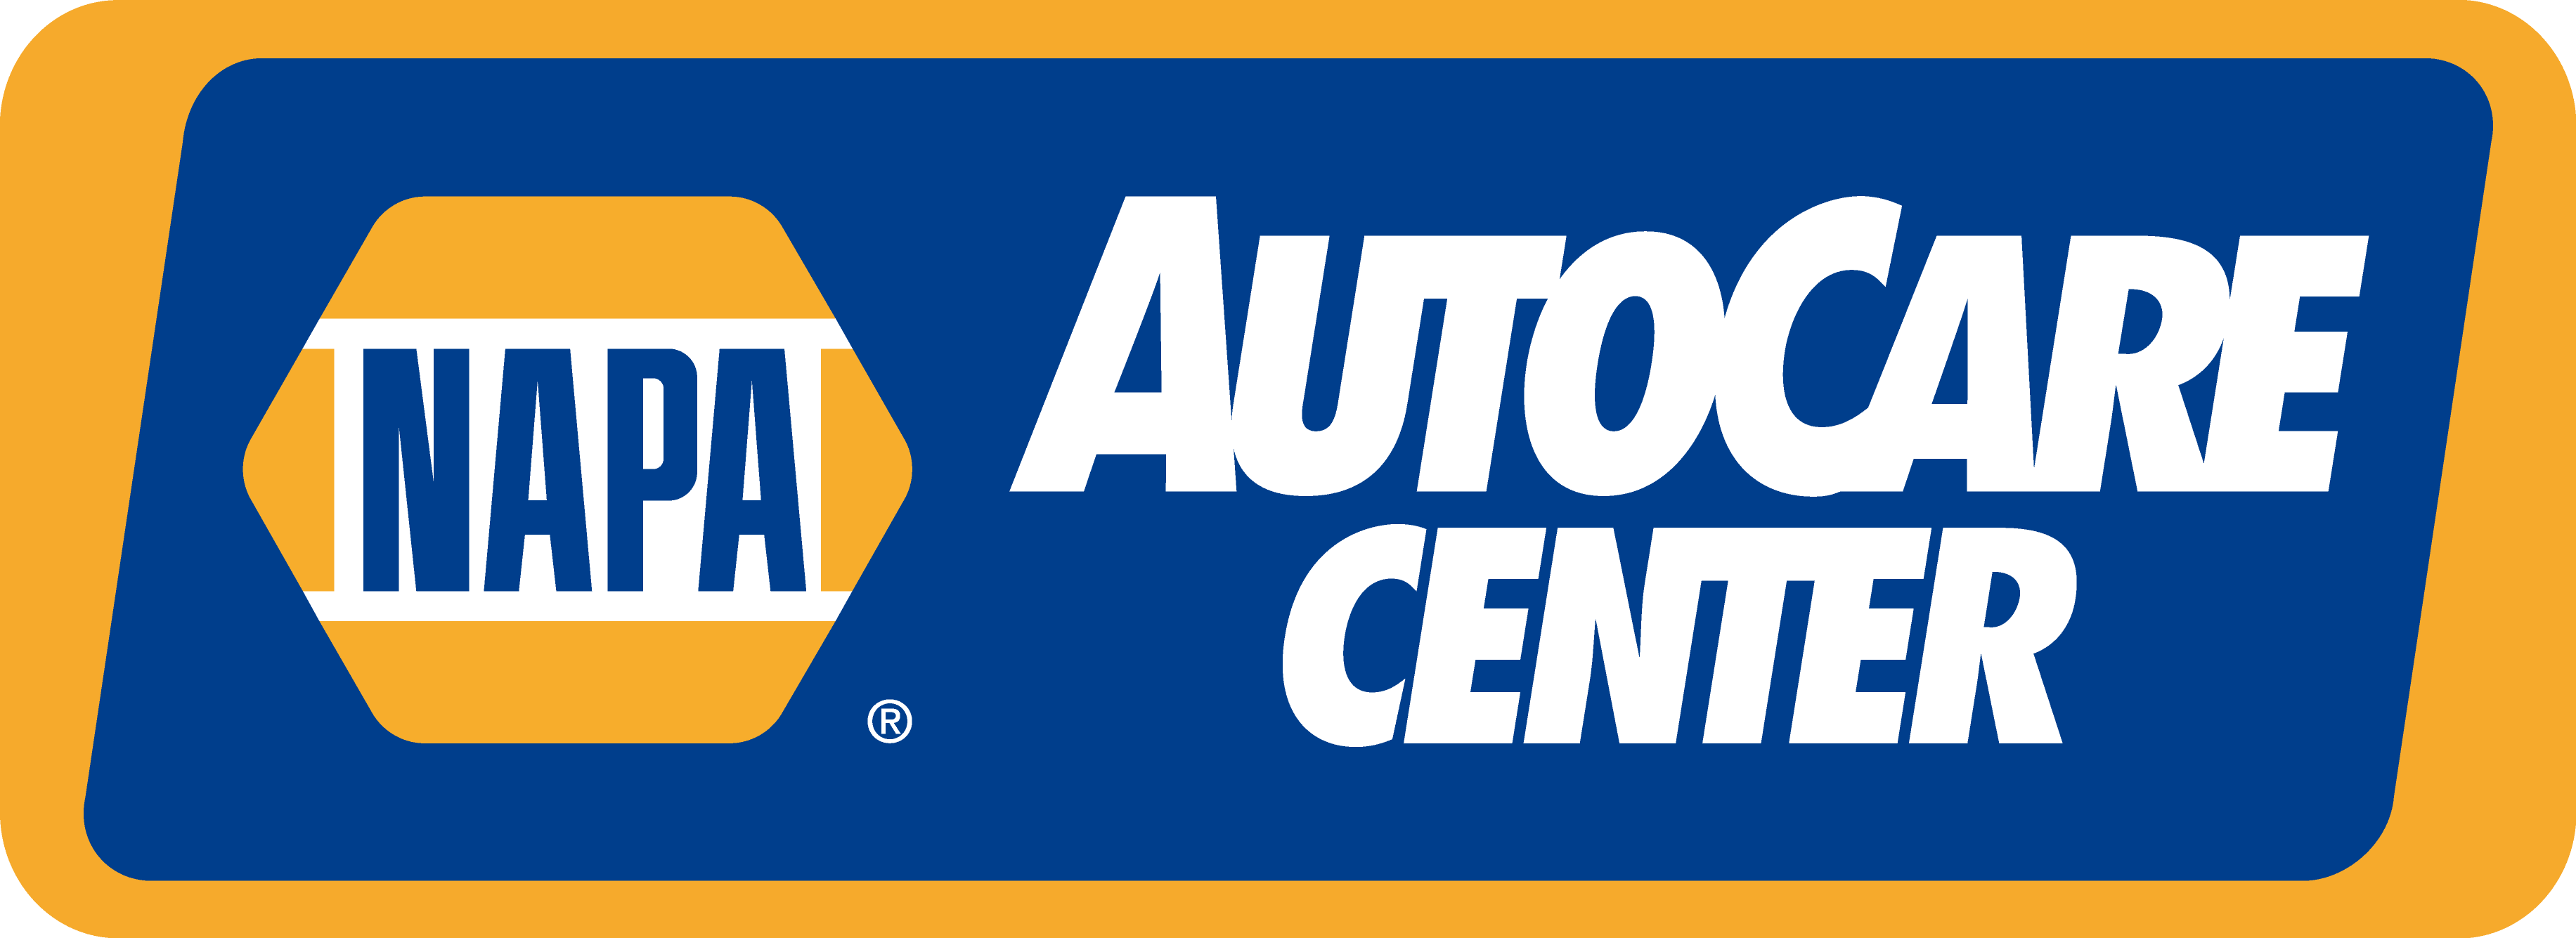 NAPA Auto Care Center, Scott's Service Place, Wheaton, IL, 60187